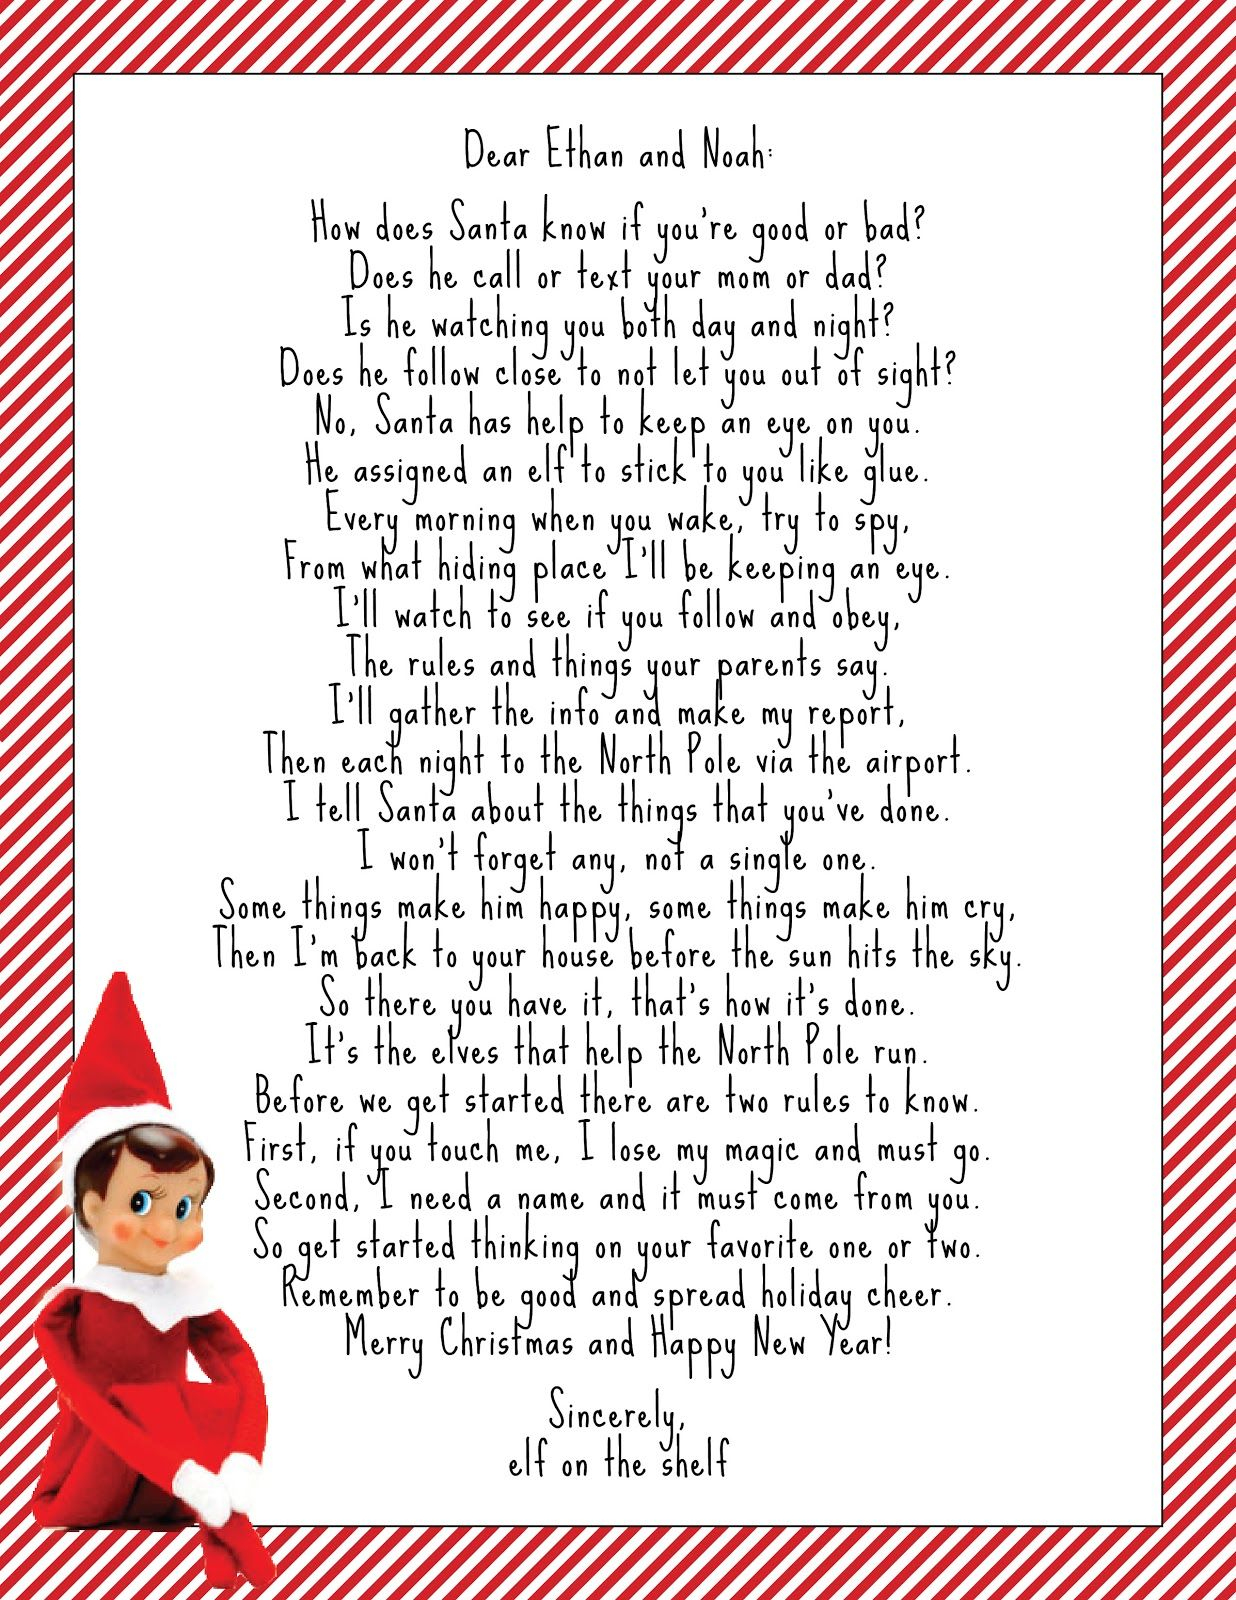 Elf on the shelf welcome letter google search kids room elf on the shelf welcome letter google search spiritdancerdesigns